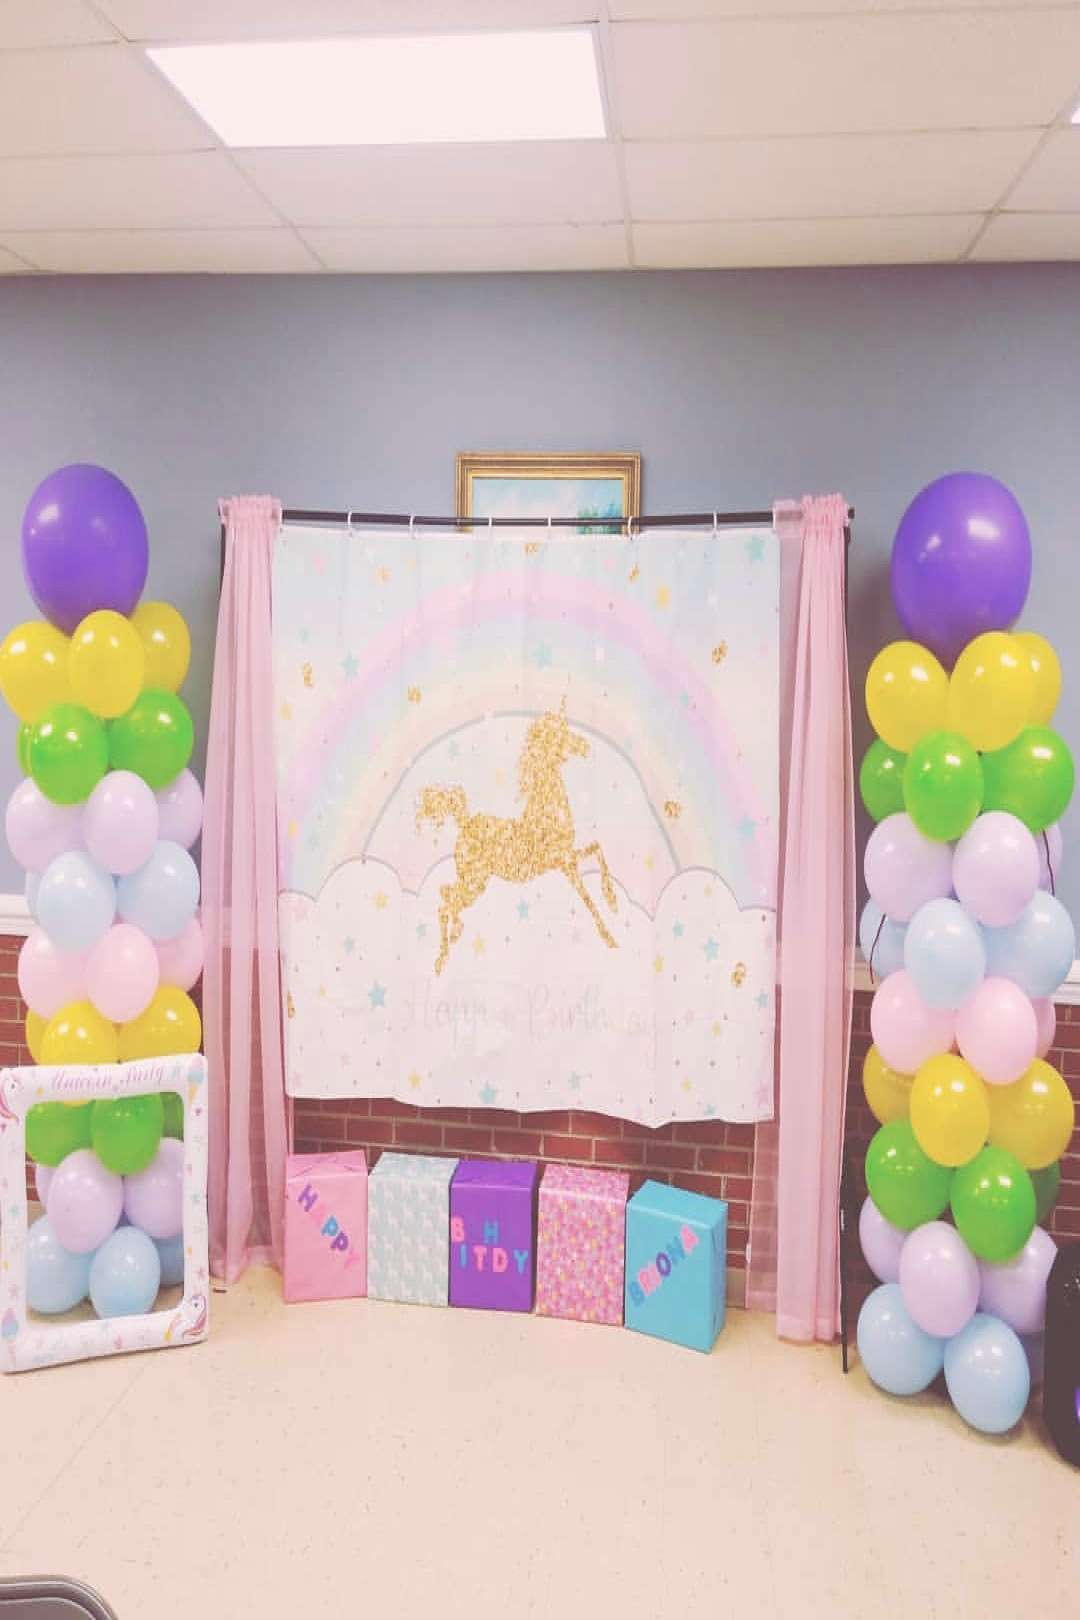 Briona's Unicorn birthday party was a success. Shout out to for t